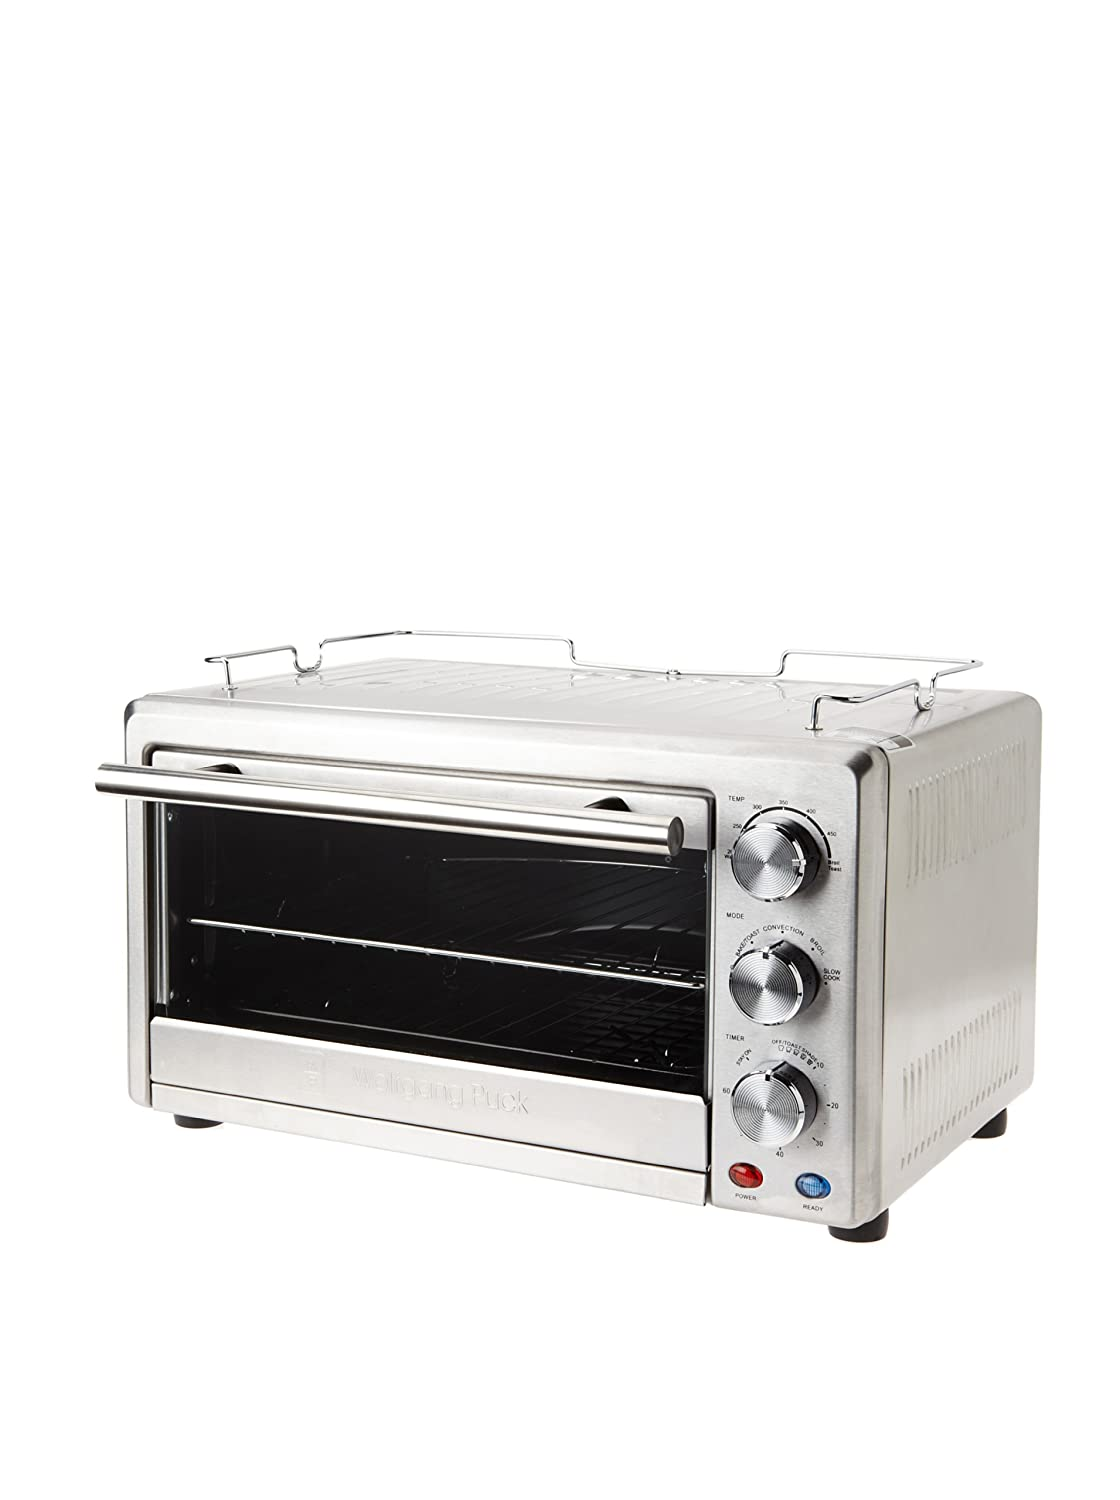 Amazon.com: Wolfgang Puck Toaster Oven Broiler with Convection ...